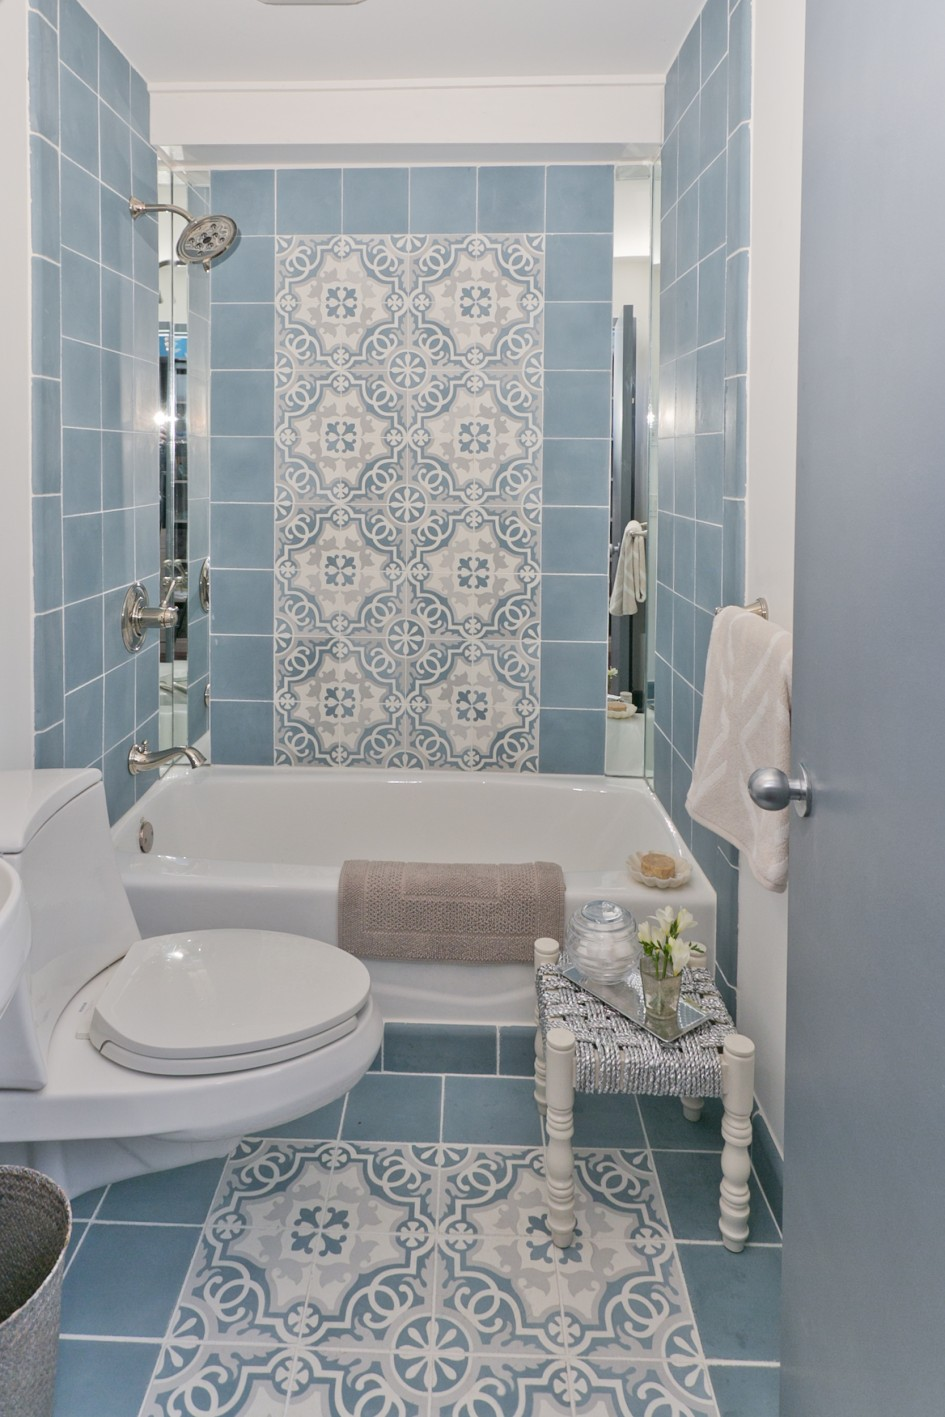 Prime 36 Nice Ideas And Pictures Of Vintage Bathroom Tile Design Ideas Largest Home Design Picture Inspirations Pitcheantrous